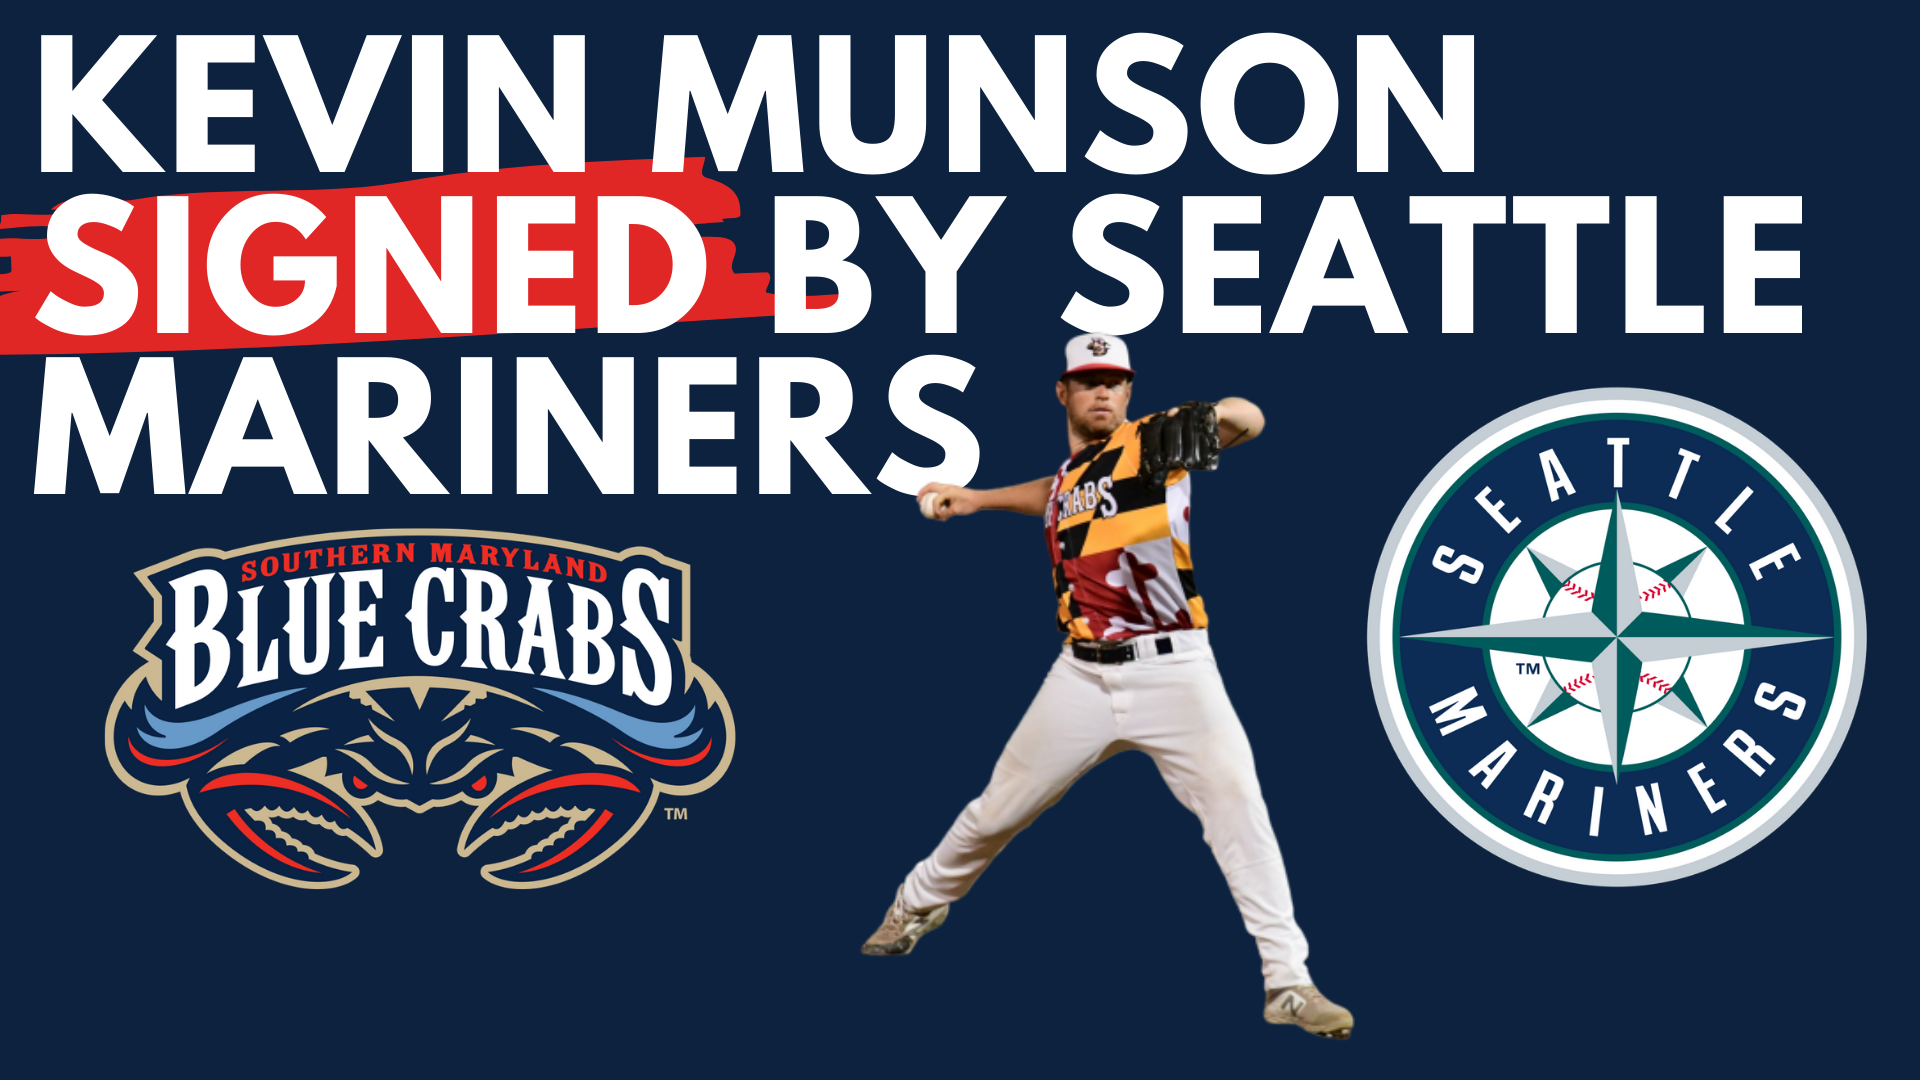 Kevin Munson Signs With Seattle Mariners